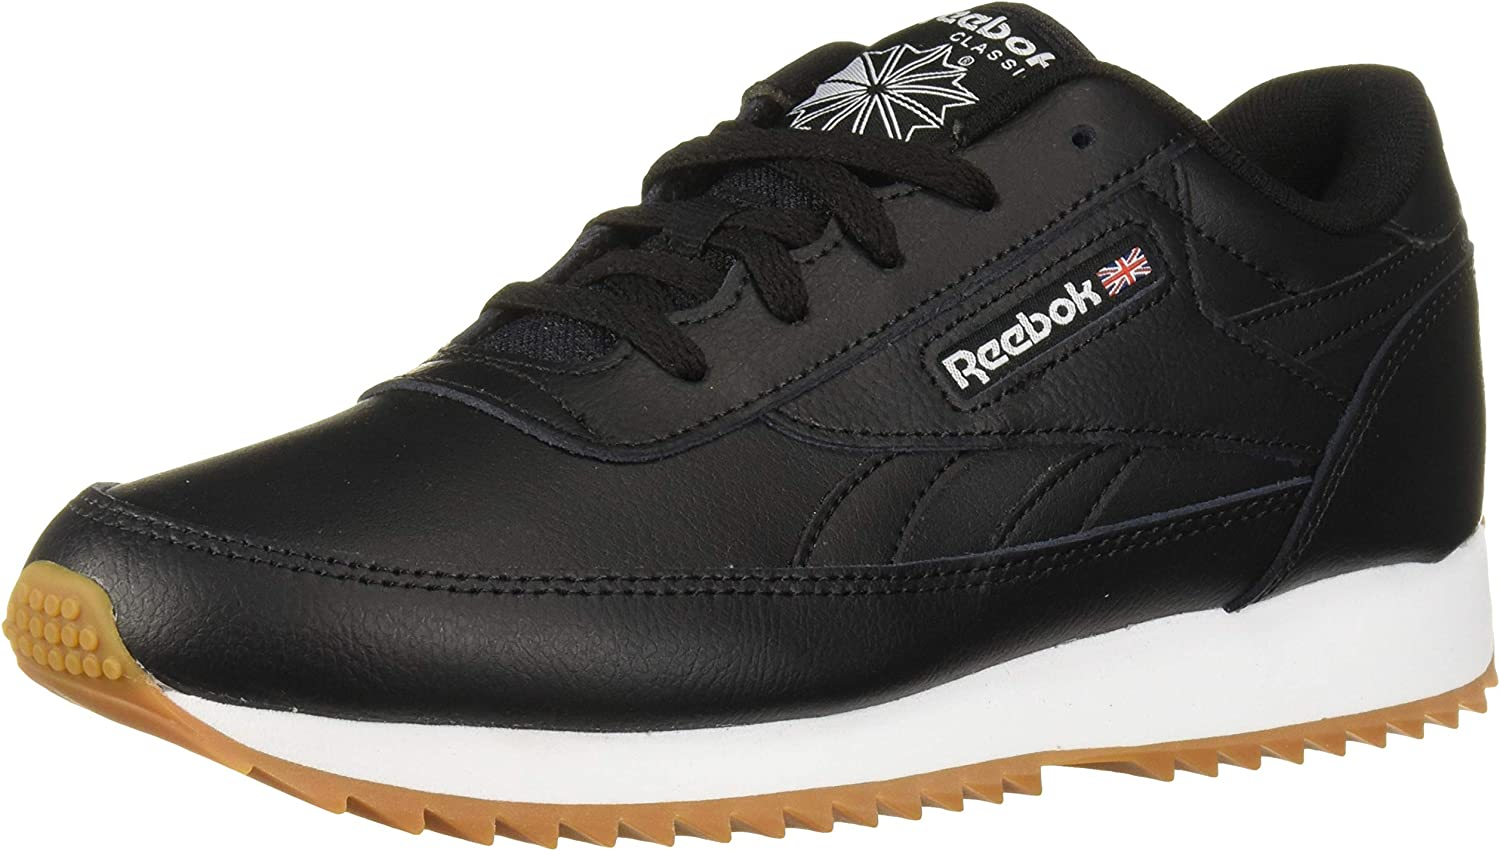 Reebok Women's New products, world's highest quality popular! Classic Ripple Renaissance Sneaker Price reduction